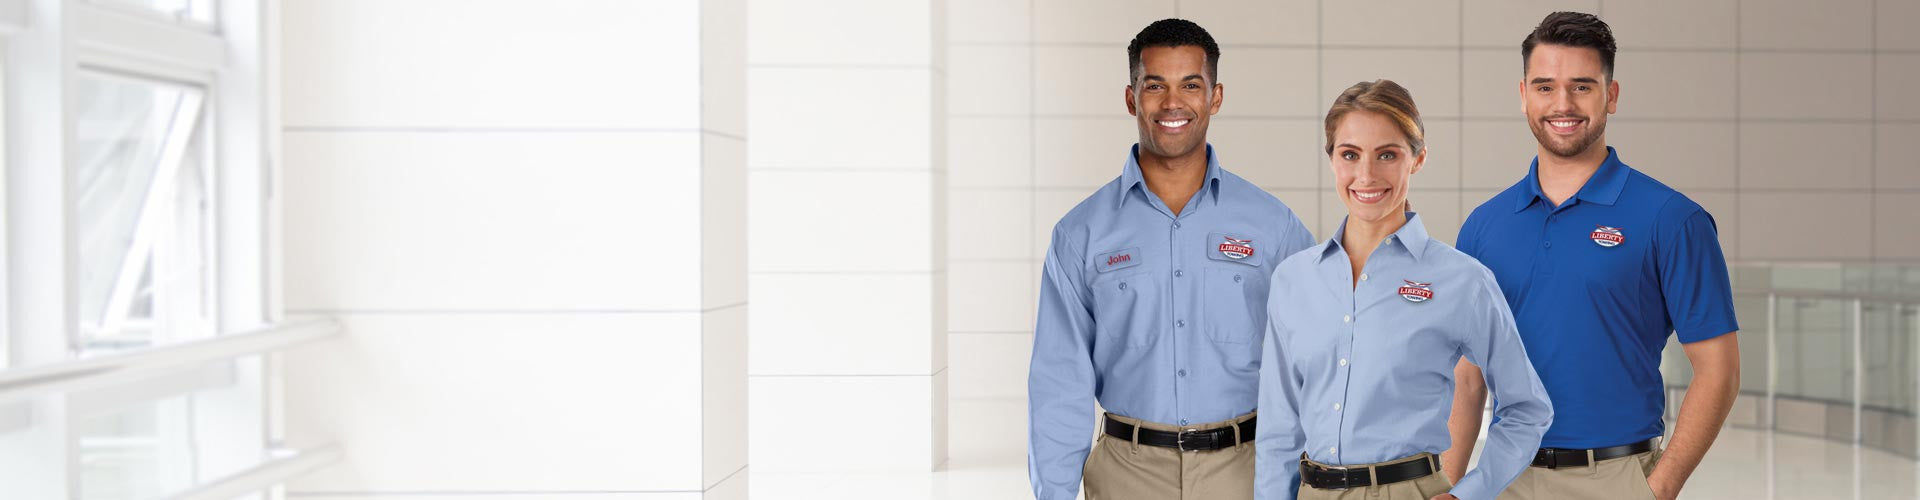 Browse our online catalog and choose from work uniforms, facility service products, and safety apparel and PPE